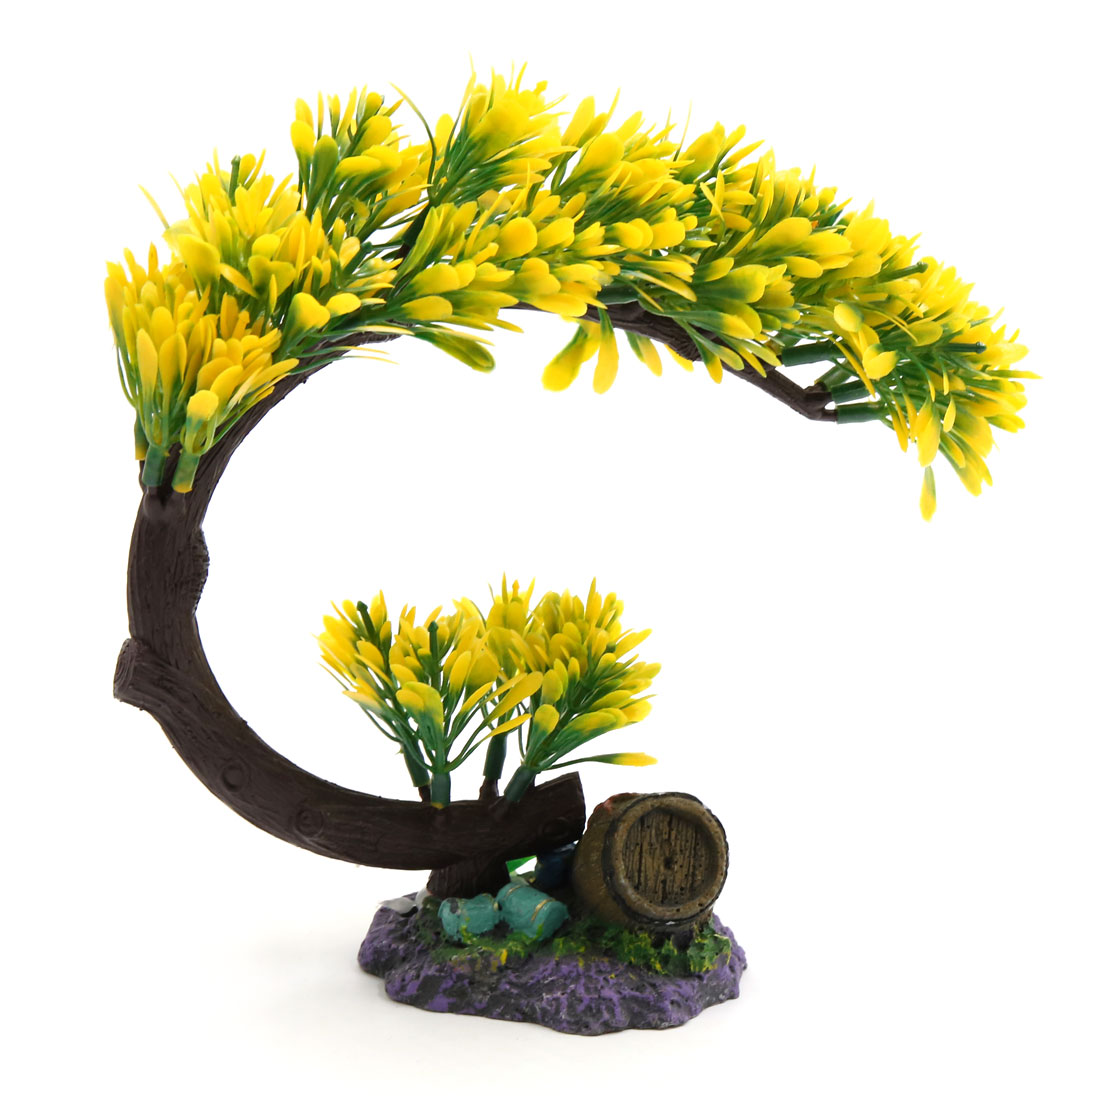 Plastic Tree Decoration Aquarium Fish Tank Landscaping Ornament Yellow Green